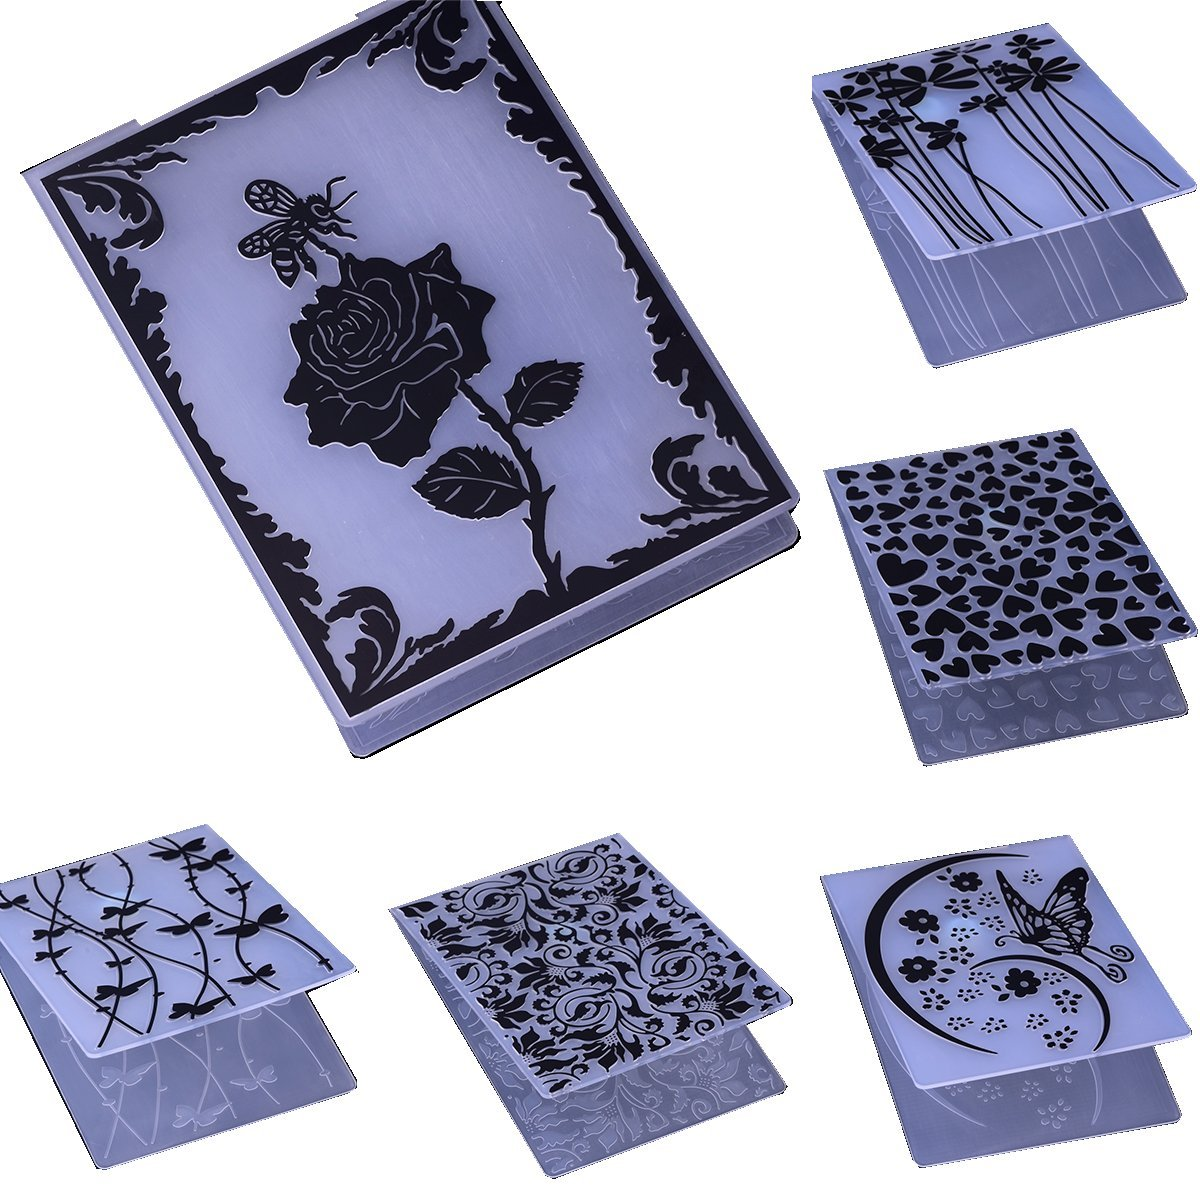 Embossing Folder for Card Making Flower Butterfly Heart DIY Plastic Scrapbooking Photo Album Card Paper DIY Craft Decoration Template Mold (6 Pcs)